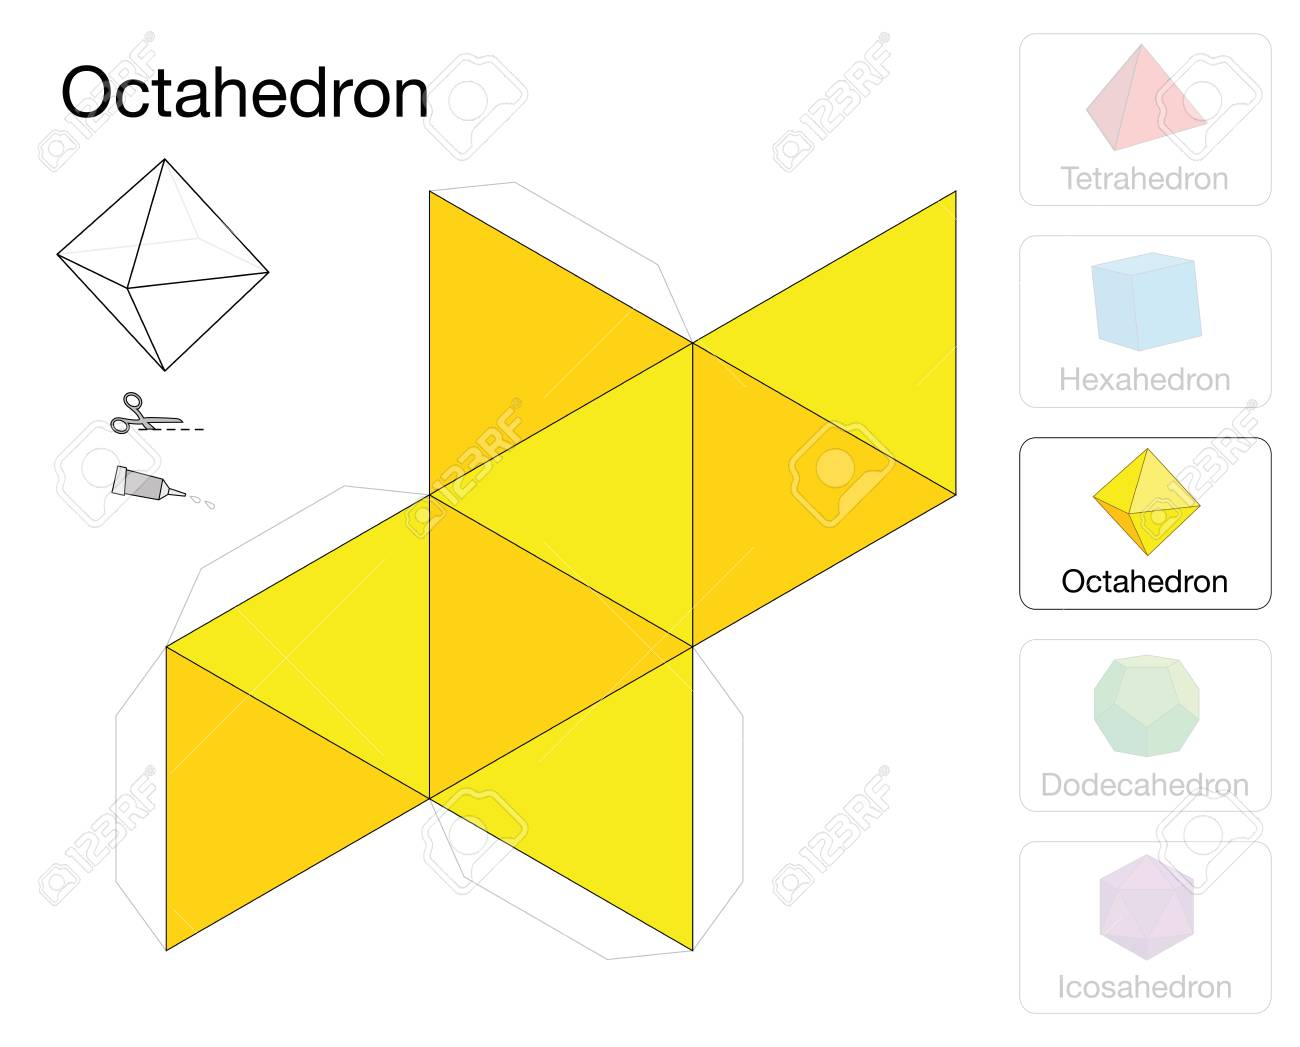 Octahedron Platonic Solid Template Paper Model Of A Octahedron